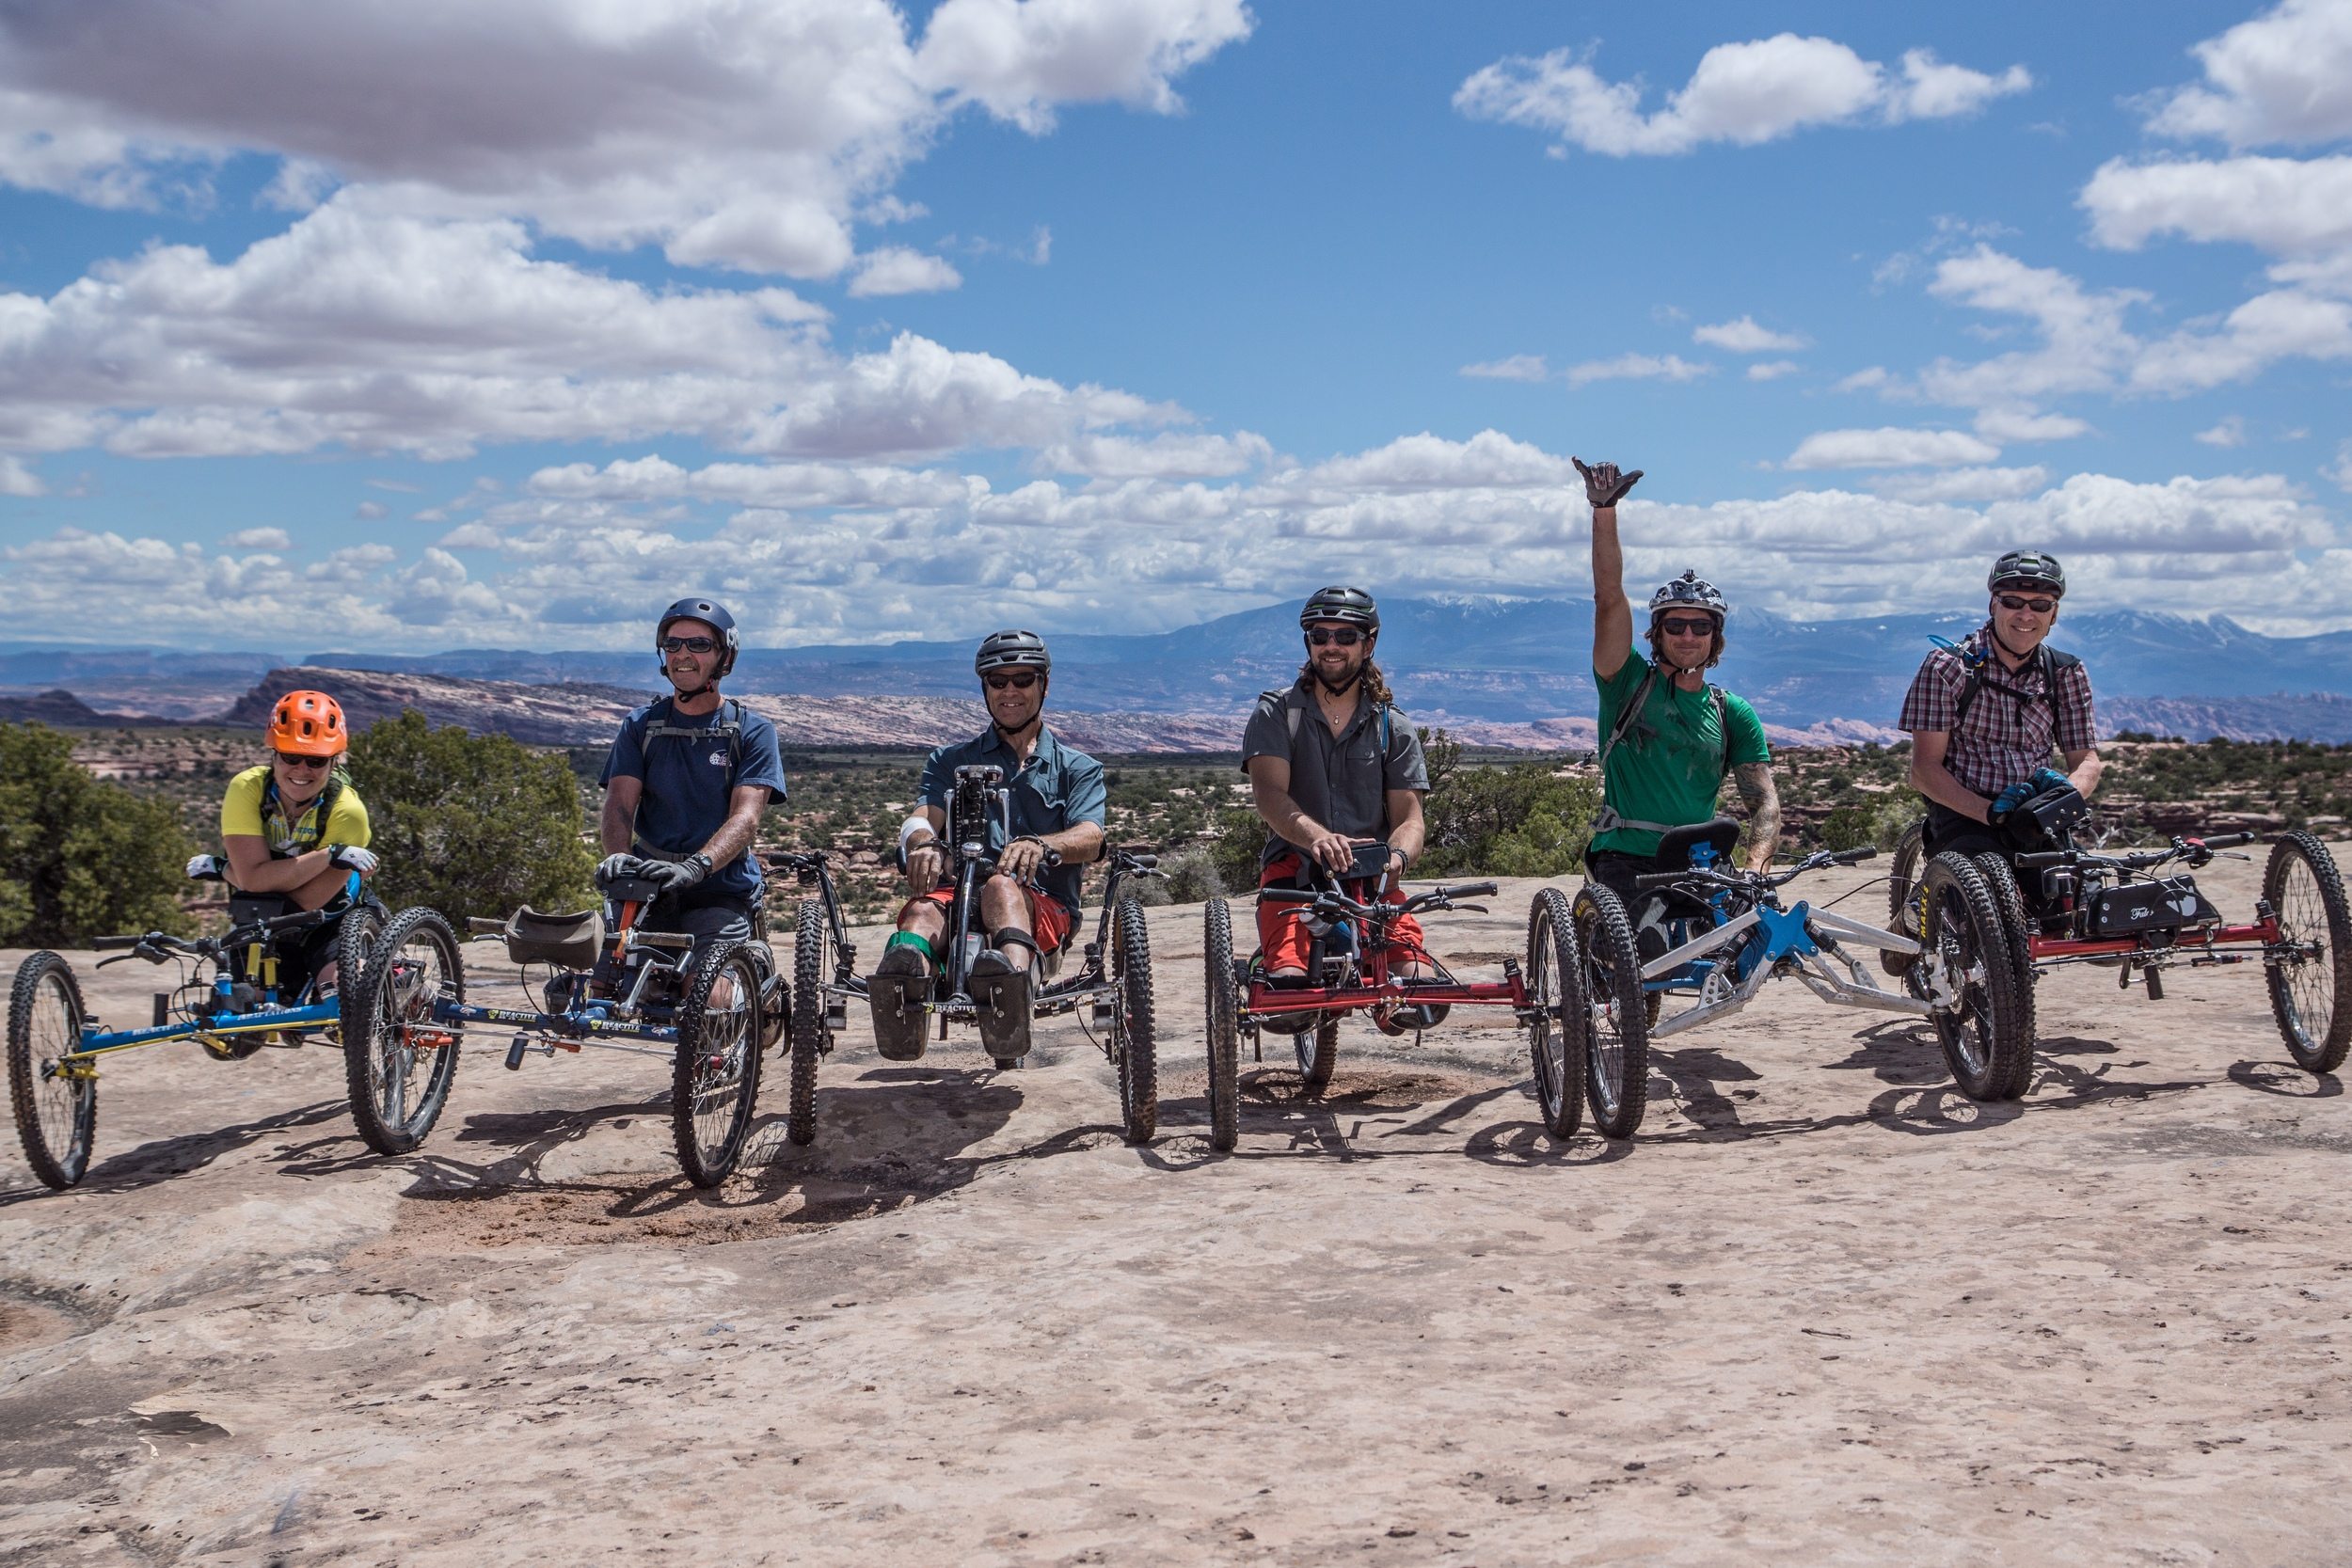 The Crew from Telluride Adaptive we met up with. From left to right: Sylvie, Ricky Bobby, Patty Wack, Madman Poole, Jer, and Jet (my fav). Cool to see all the different bikes.   Photo by Jeff Fox (  @foxonarock  )